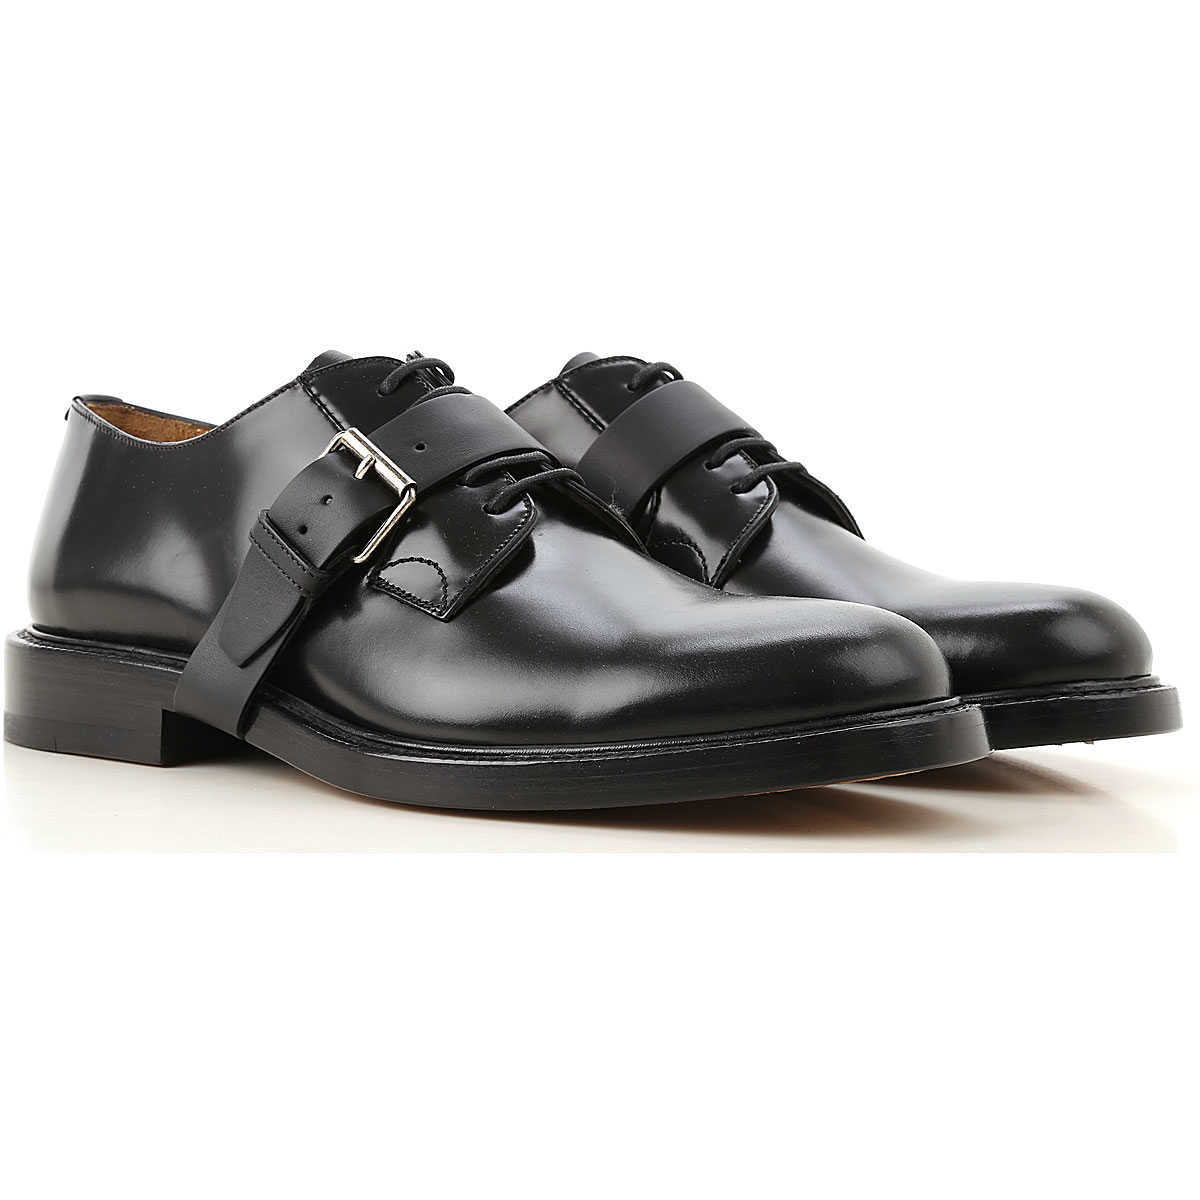 Valentino Garavani Lace Up Shoes for Men Oxfords 6.5 7 8 8.5 Derbies and Brogues On Sale UK - GOOFASH